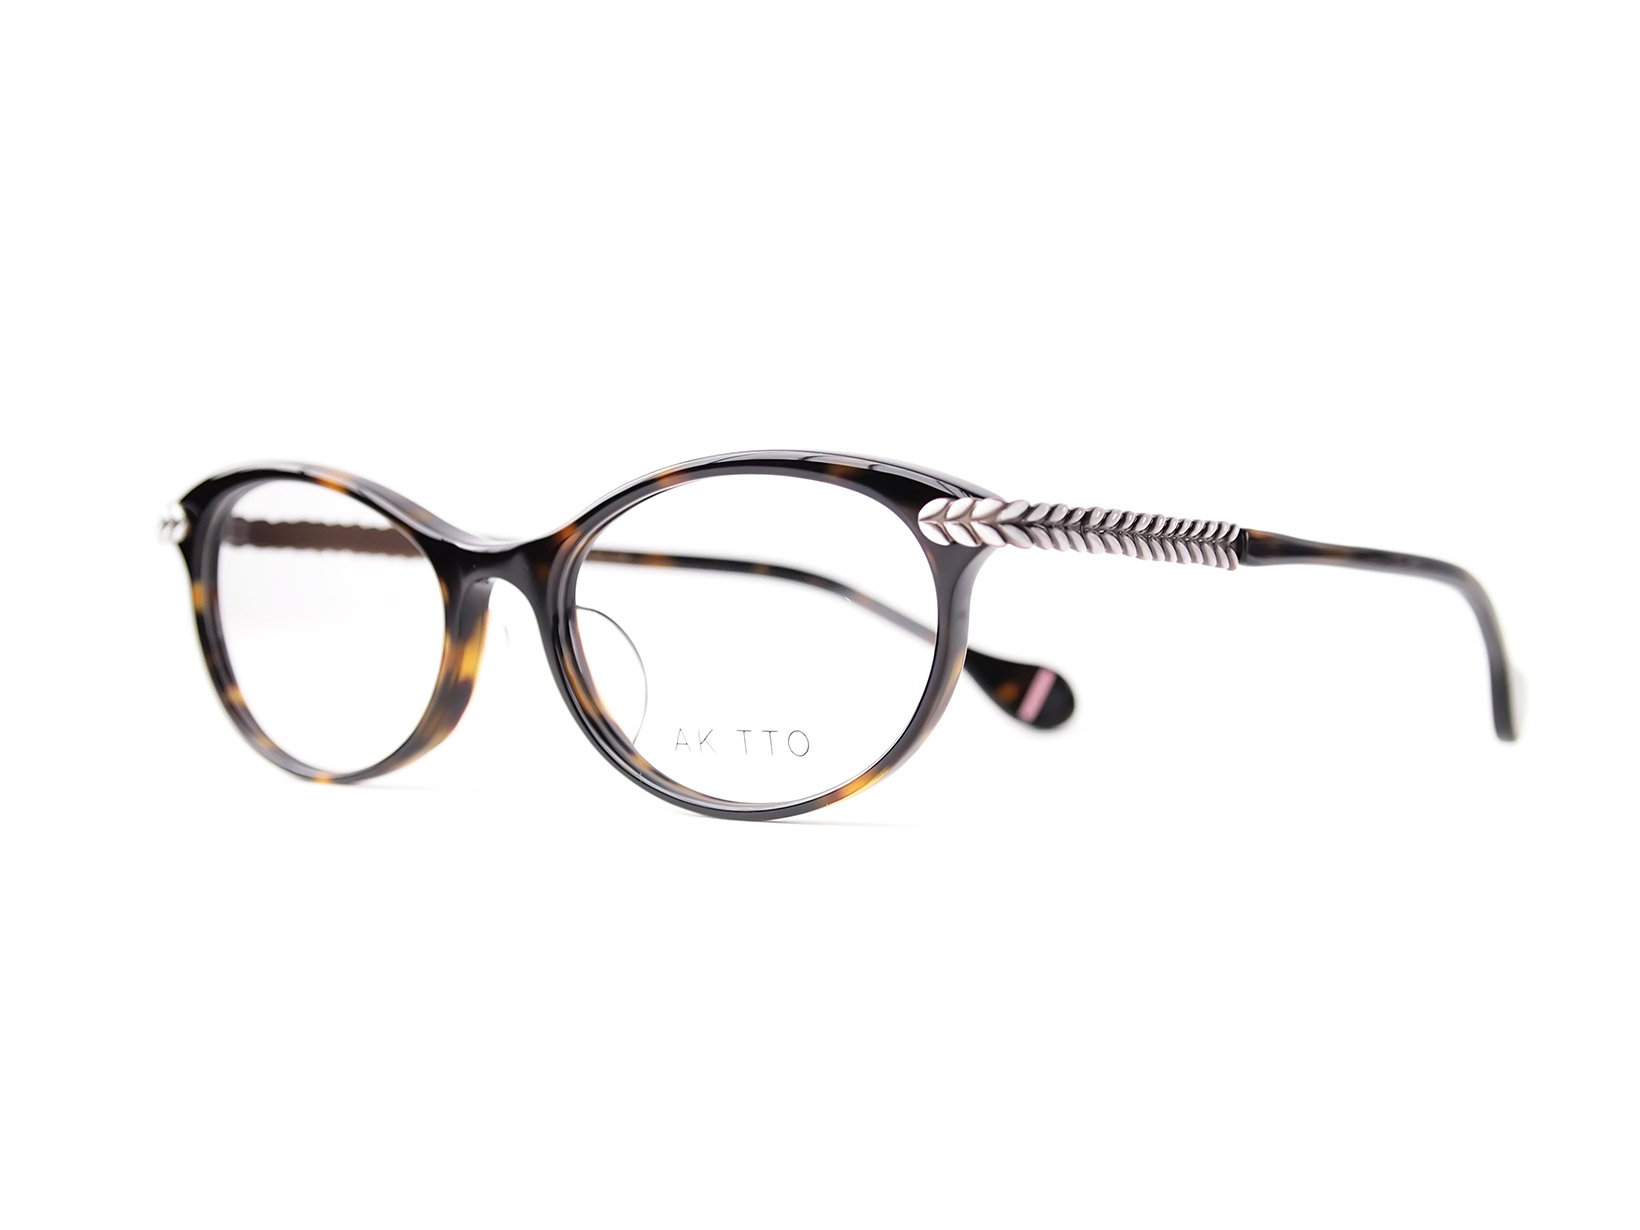 AKITTO 2016-3rd rey-p color|HA size:51□17 material:acetate+titanium price:44,500-(+tax)